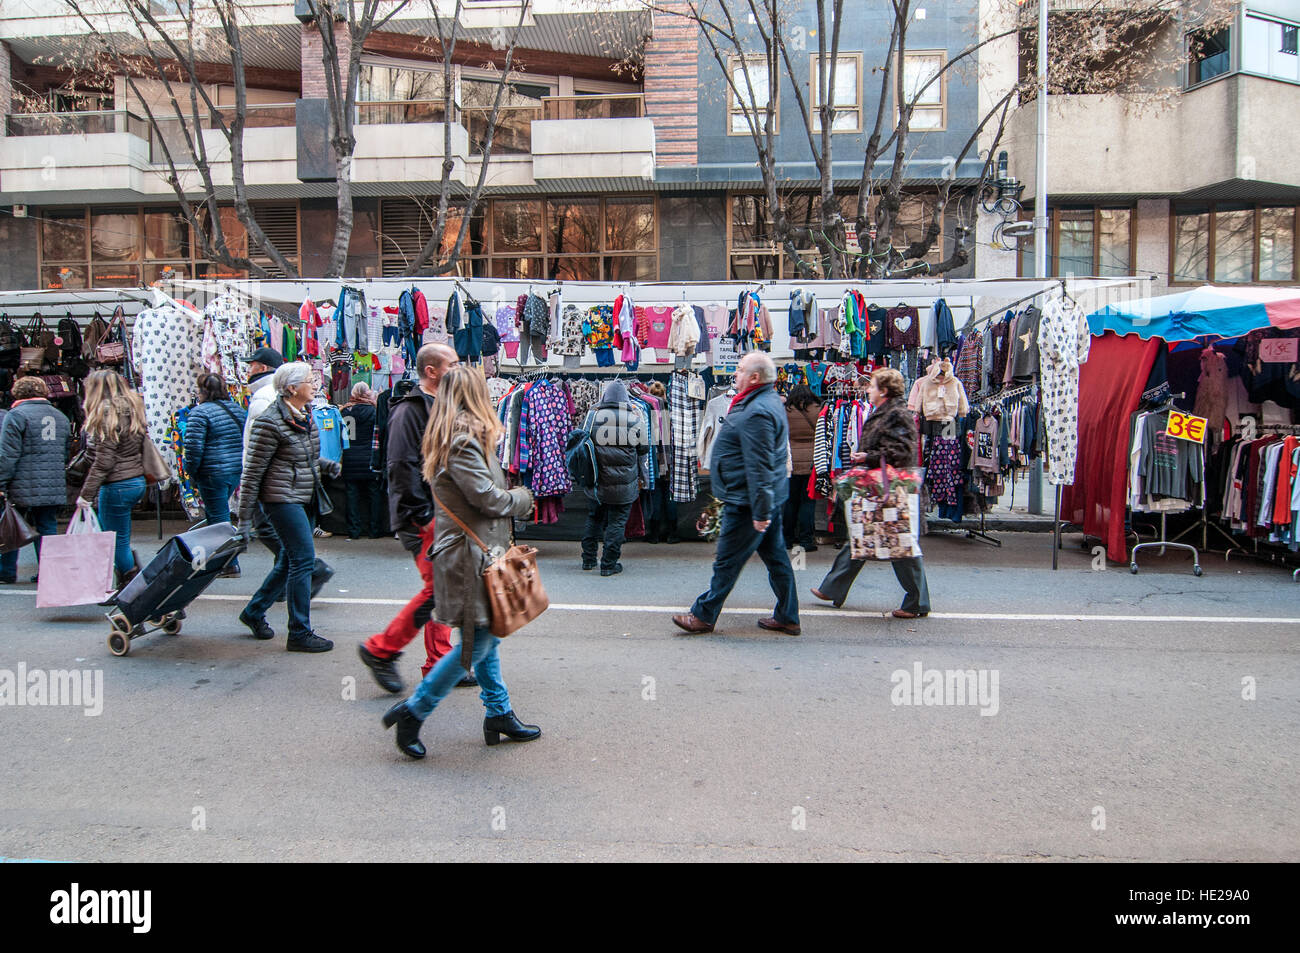 Street market in the city of Vic, Catalonia, Spain - Stock Image